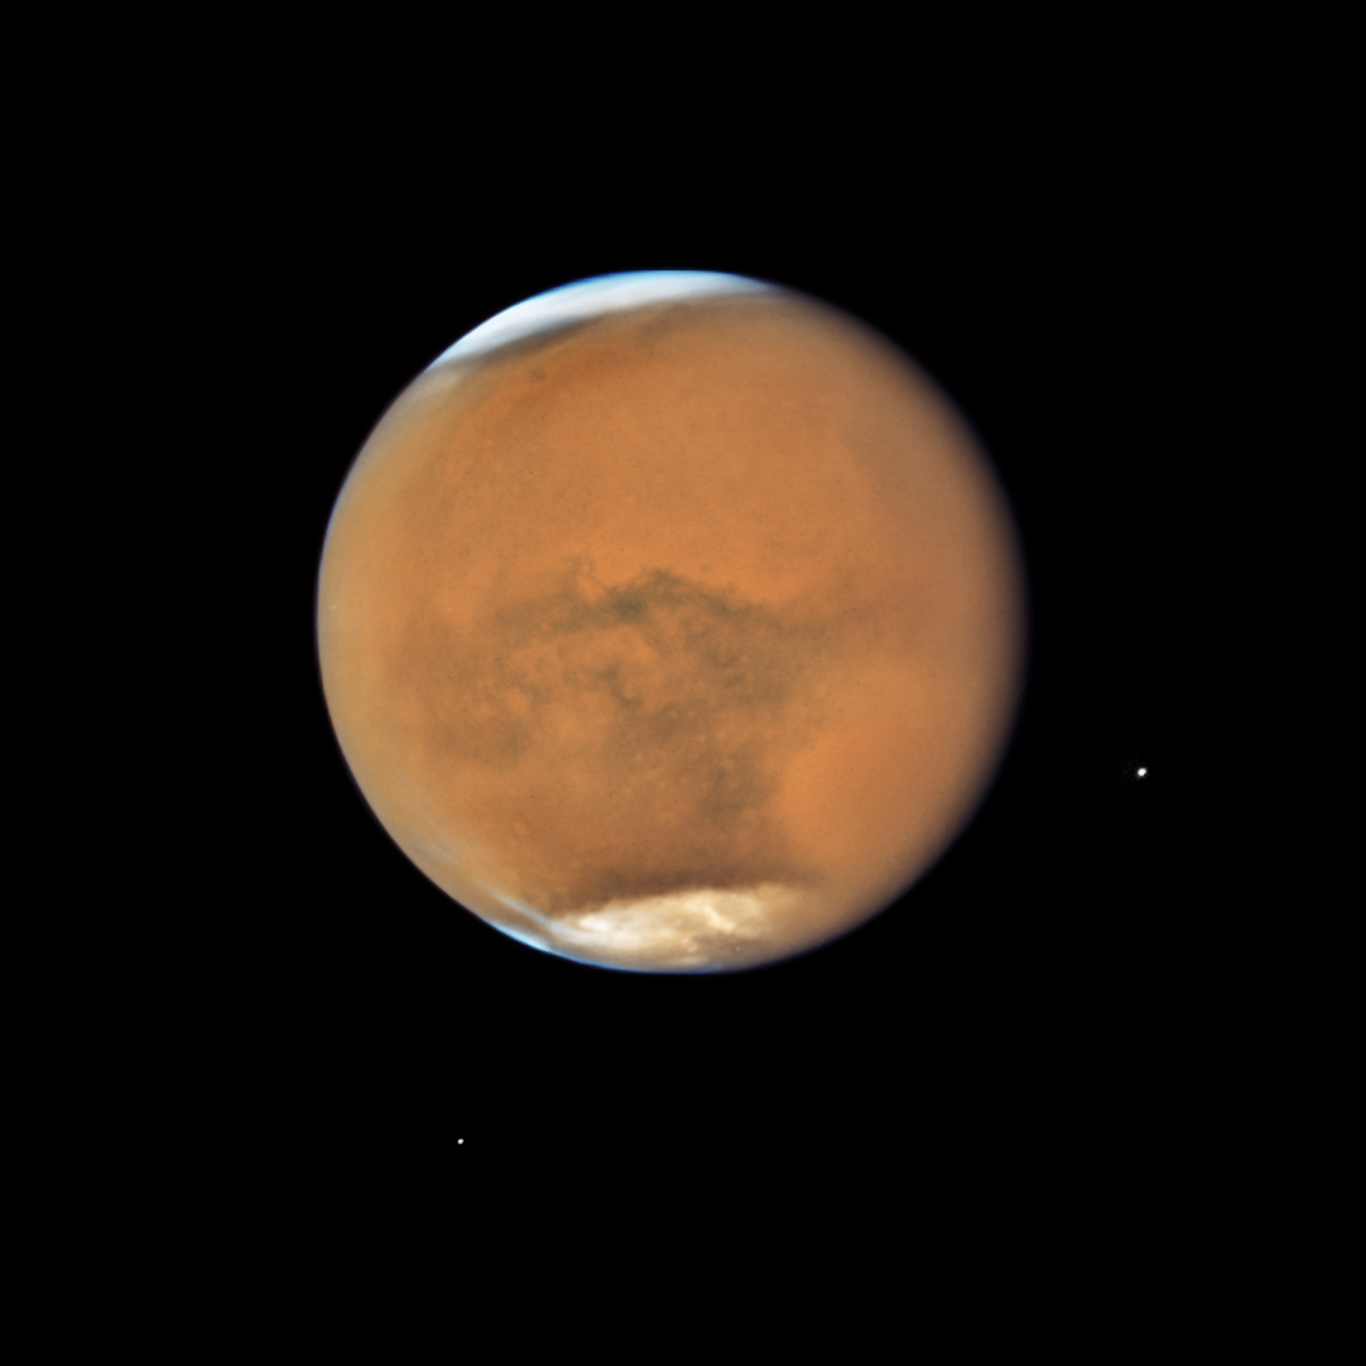 UAE launches its first mission to Mars thumbnail